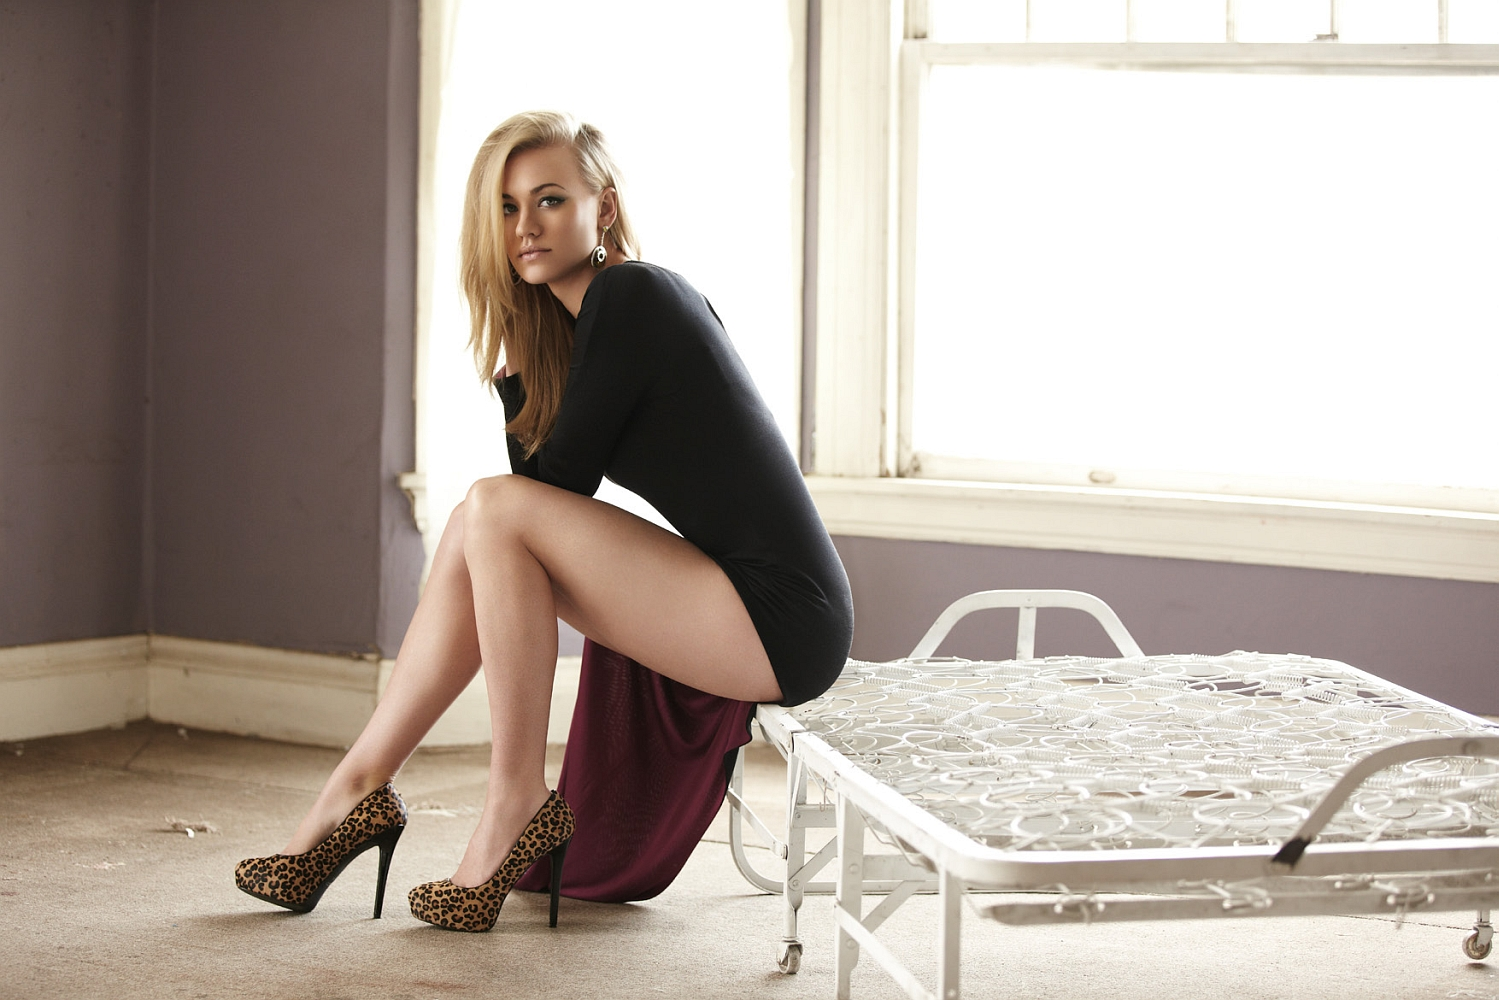 Yvonne Strahovski Has Beautiful Legs in Sky High Heels | Only in ...